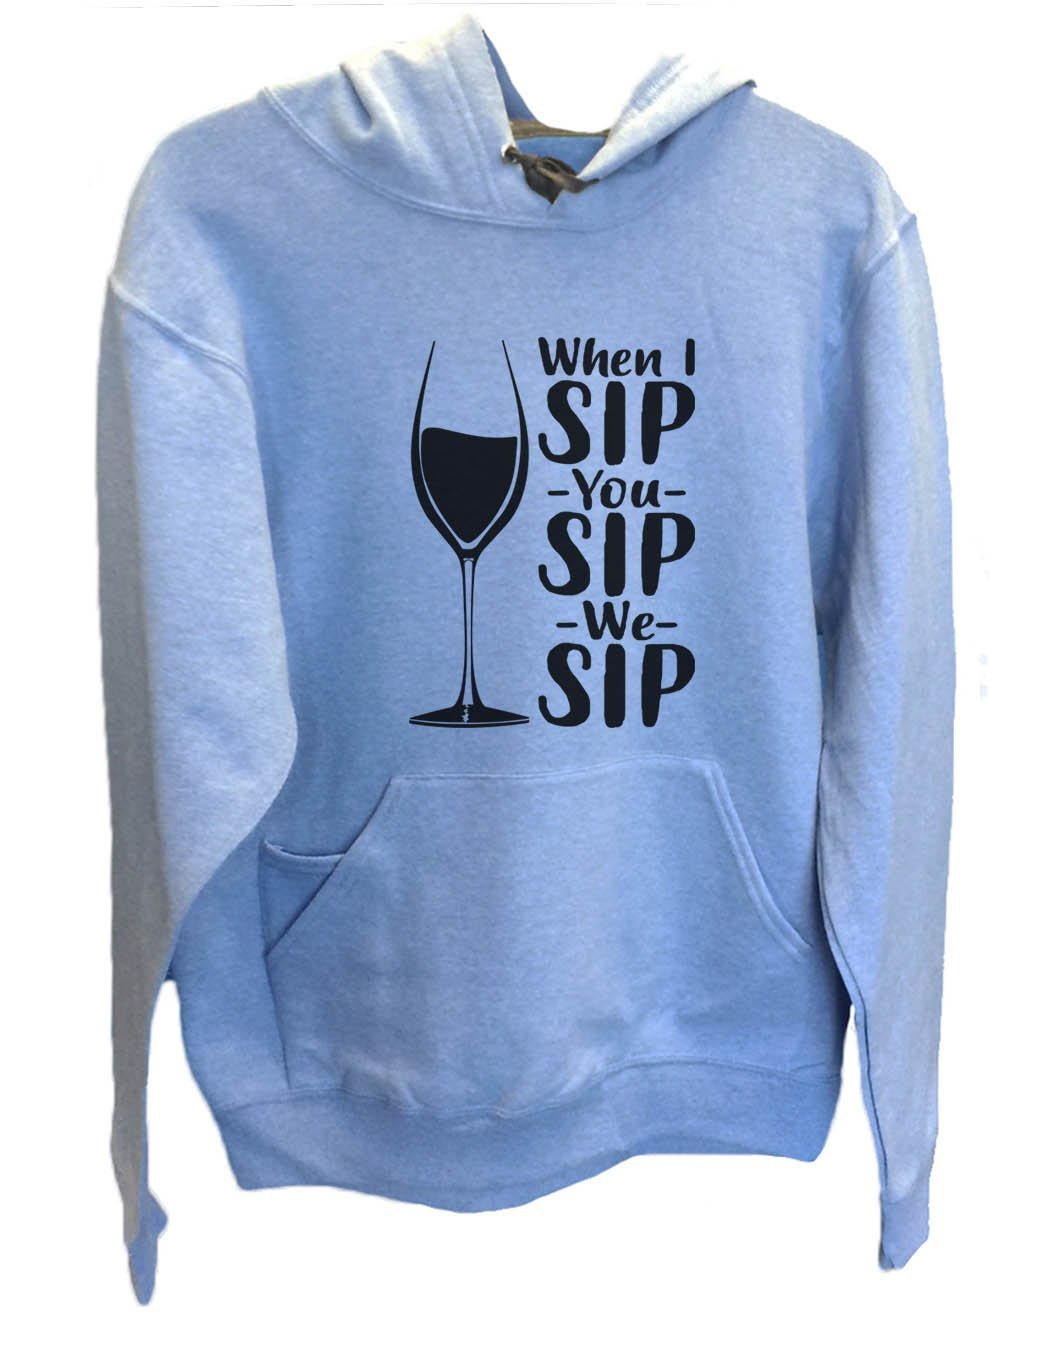 UNISEX HOODIE - When I Sip You Sip We Sip - FUNNY MENS AND WOMENS HOODED SWEATSHIRTS - 2167 Funny Shirt Small / North Carolina Blue